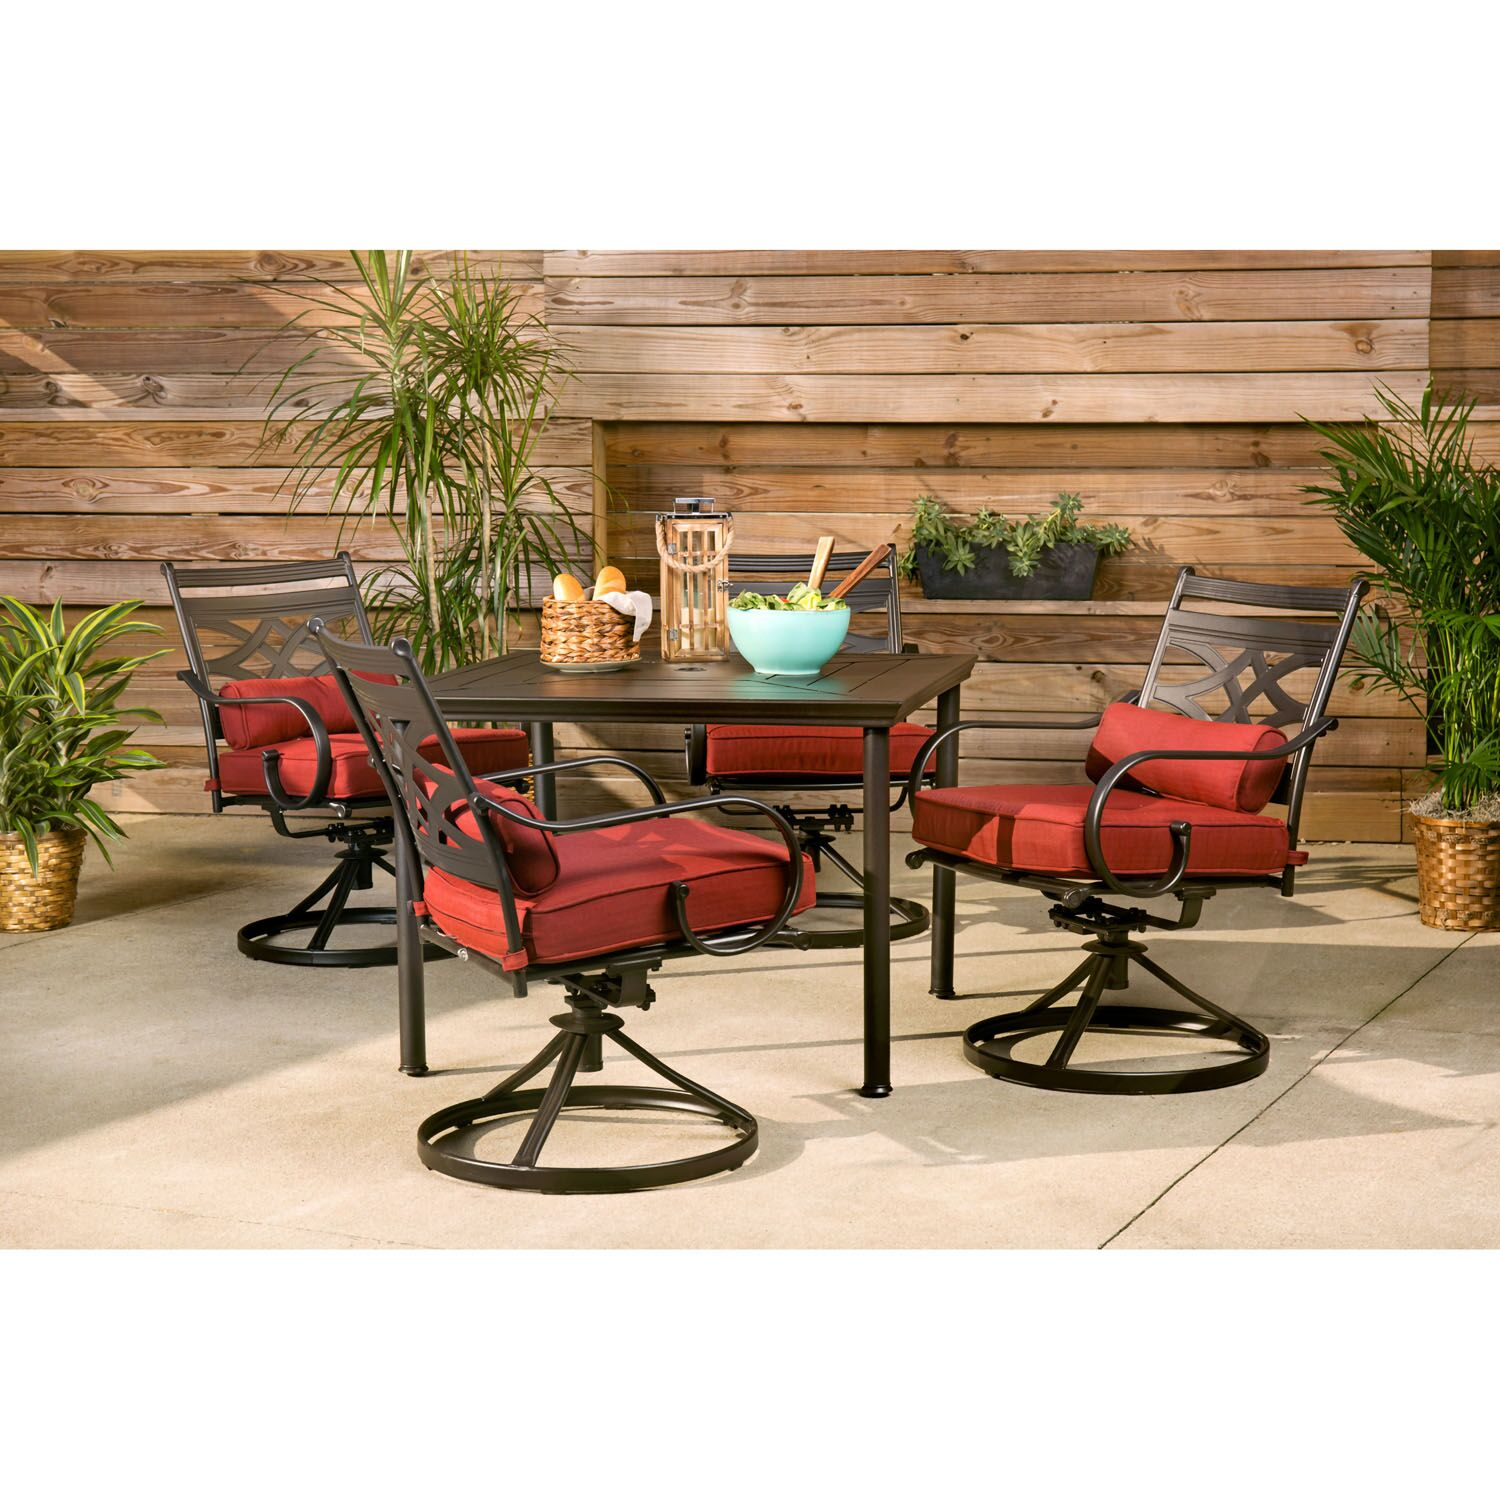 Keaney 5 Piece Dining Set with Cushions Cushion Color: Chili Red